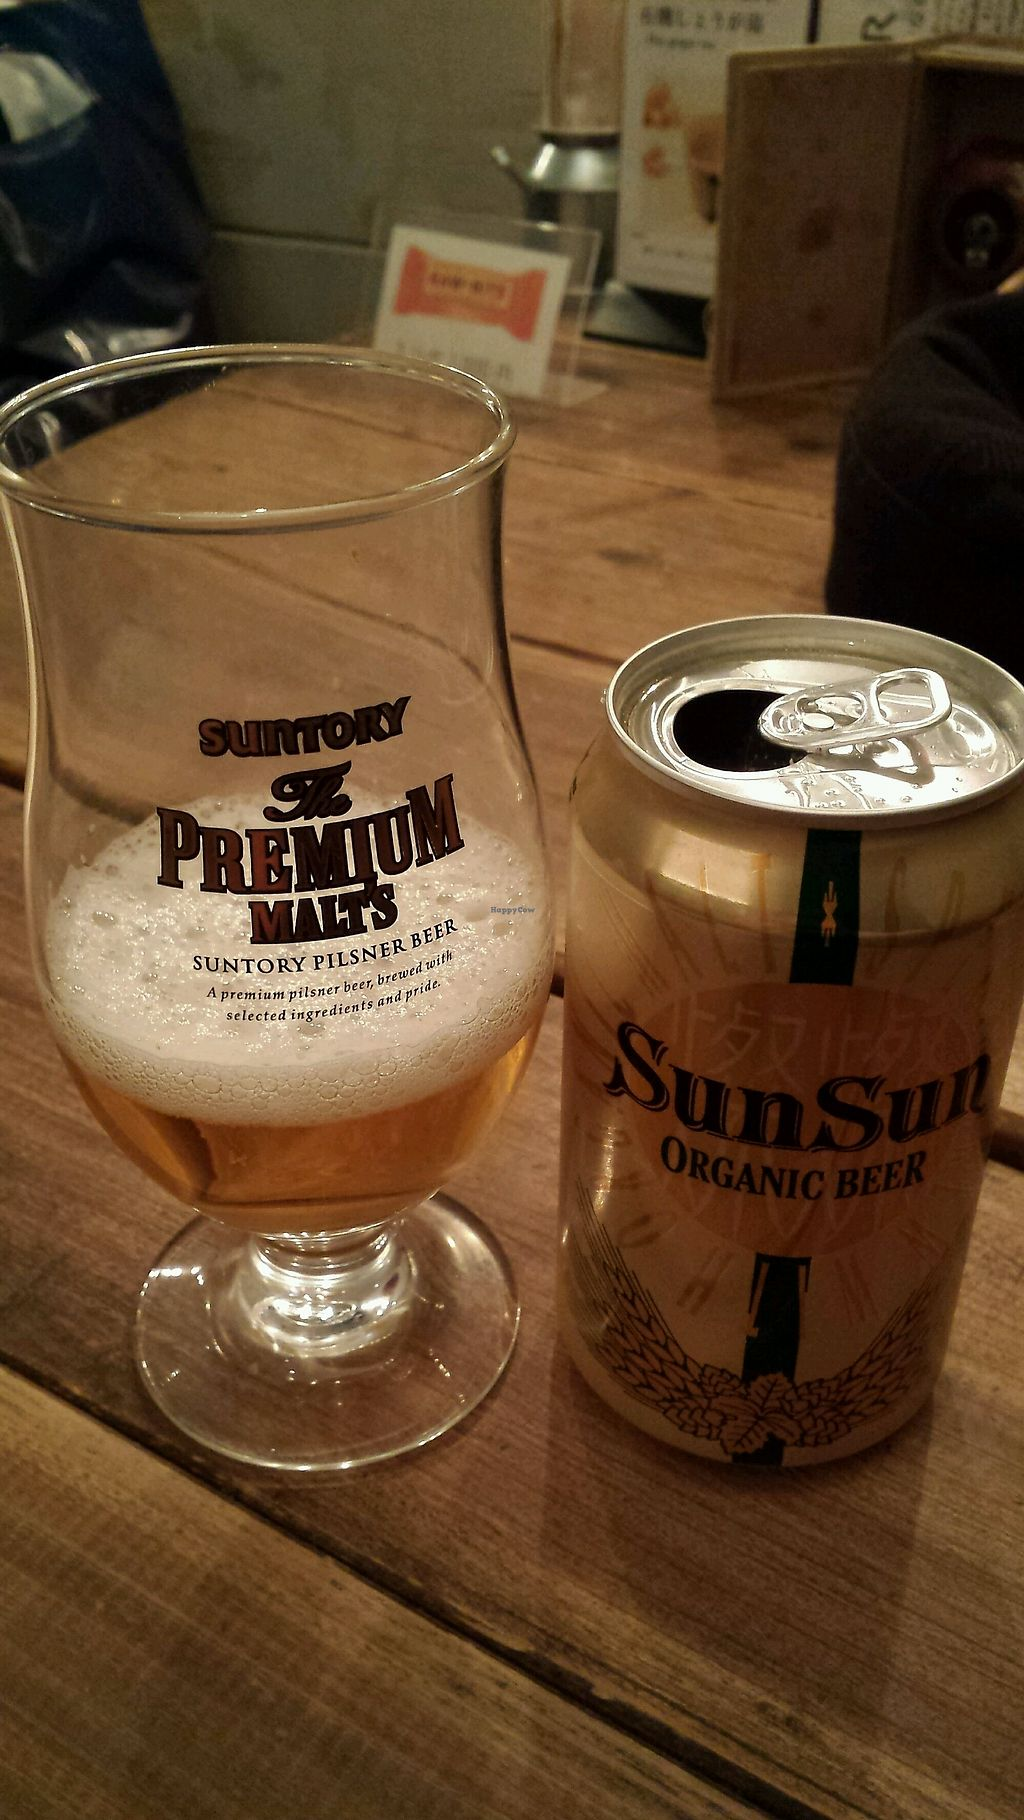 """Photo of Paprika Shokudo Vegan  by <a href=""""/members/profile/FabianBr%C3%A4u"""">FabianBräu</a> <br/>bio beer at the restaurant <br/> February 23, 2018  - <a href='/contact/abuse/image/45738/362778'>Report</a>"""